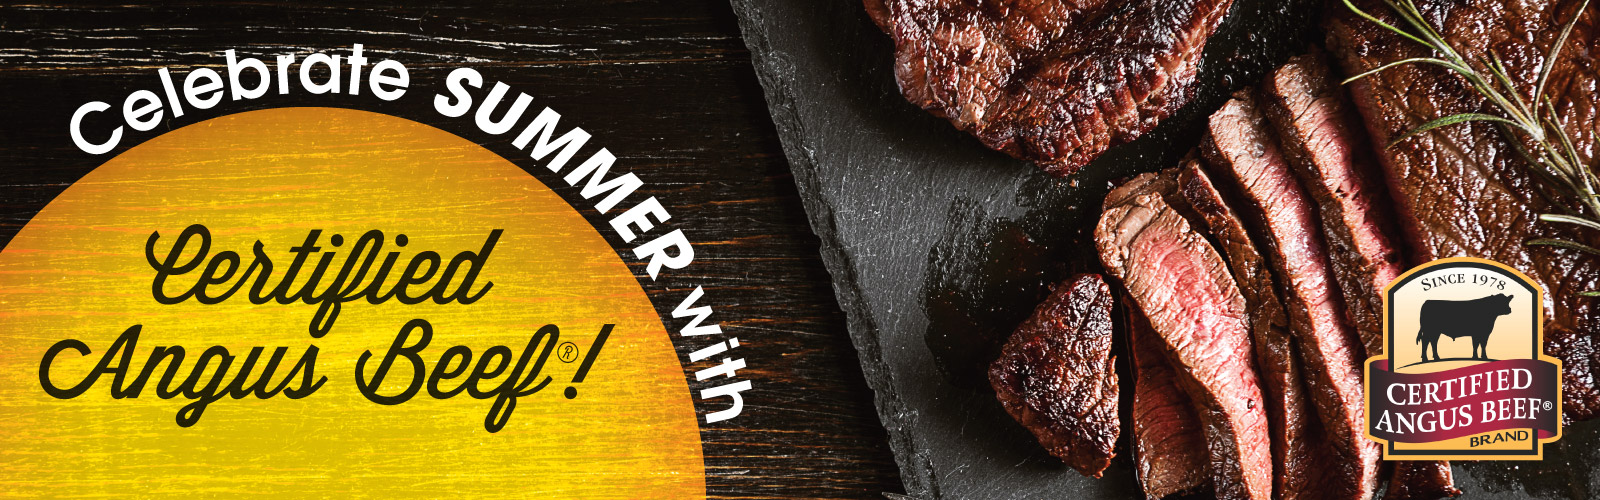 Summer Grilling with Certified Angus Beef®